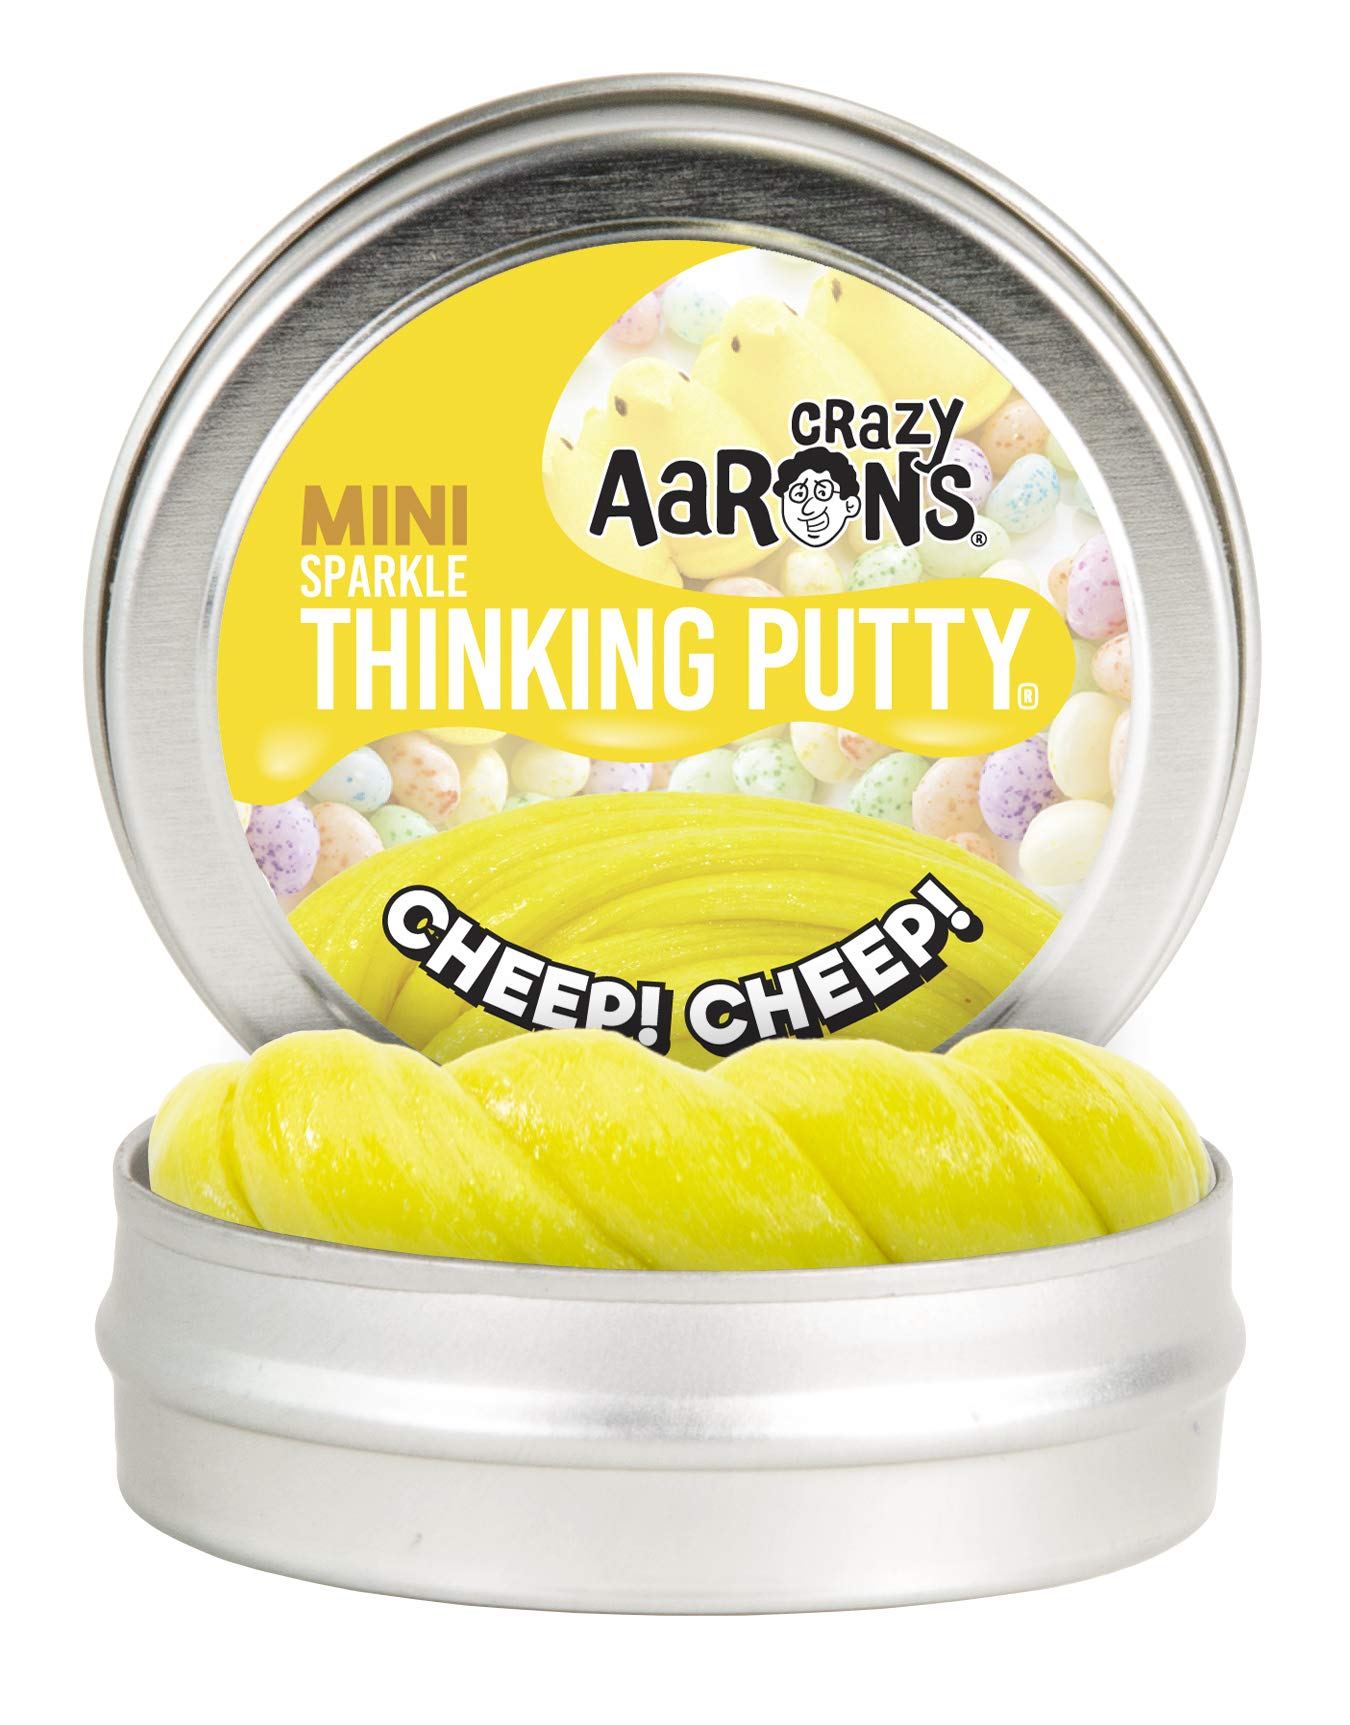 Crazy Aaron's Thinking Putty - Easter Trio 12 Pack - Spring Showers, Fresh Grass and Cheep Cheep Sparkle 2'' Mini Tins - Perfect as Easter Basket Stuffer! by Crazy Aaron's (Image #4)